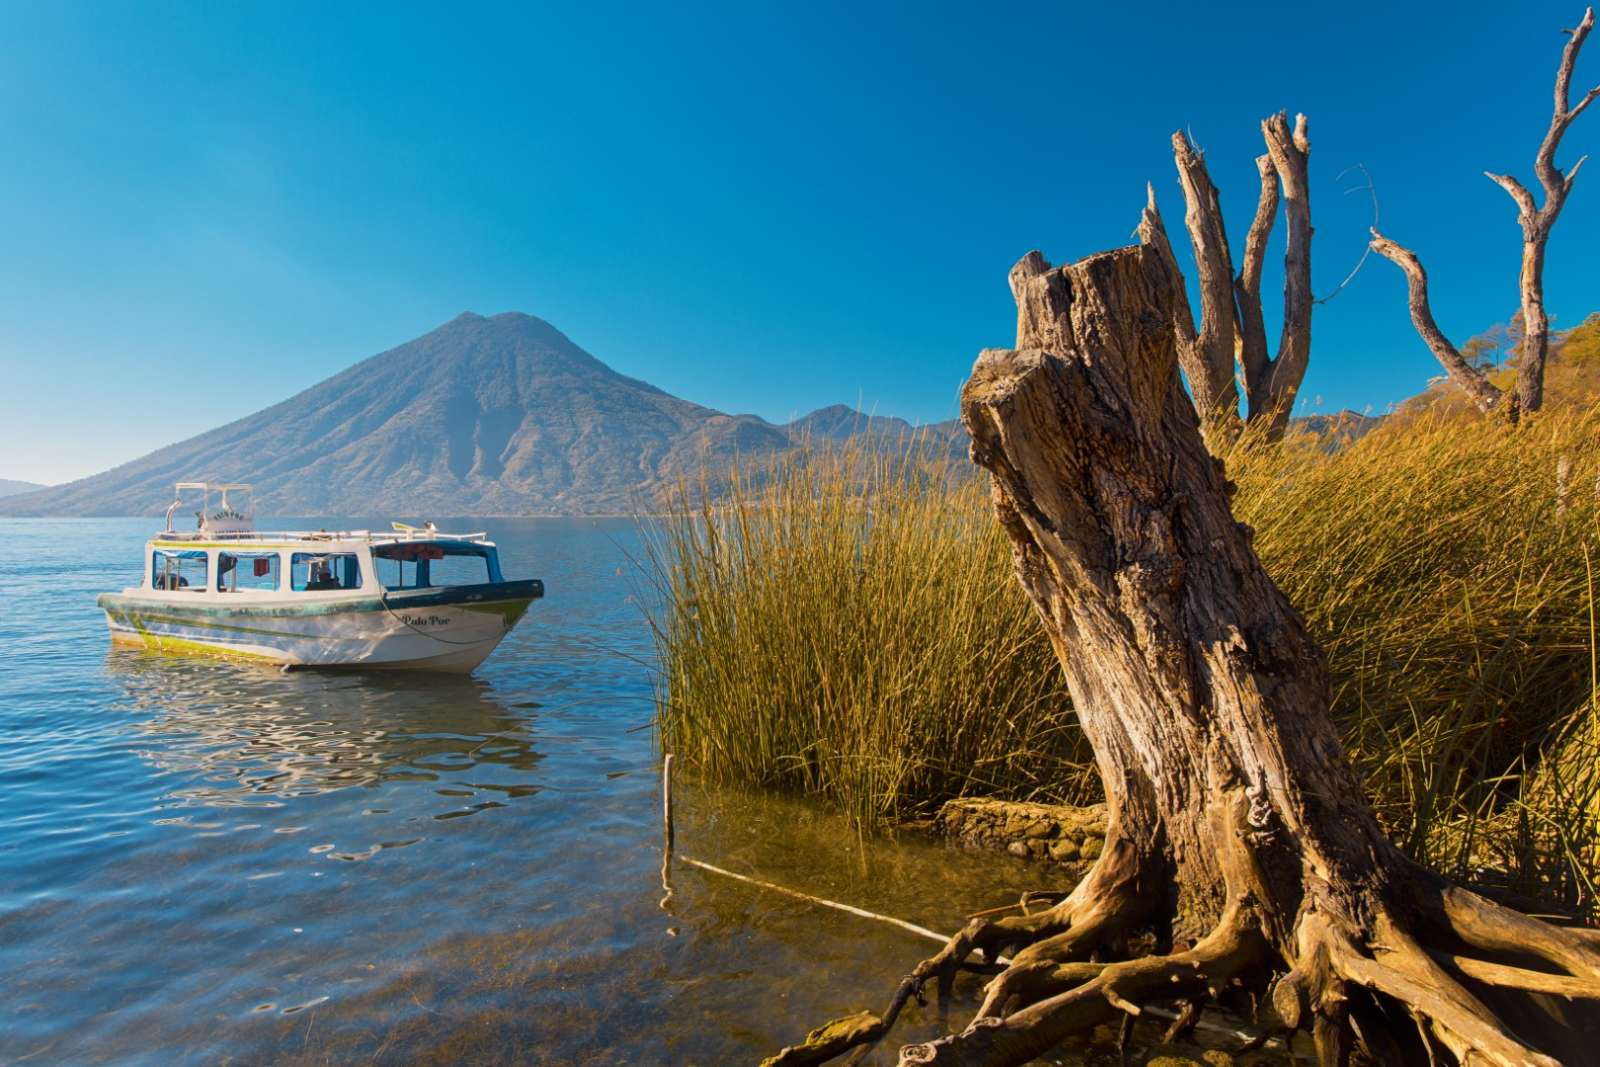 Water taxi on Lake Atitlan, Guatemala